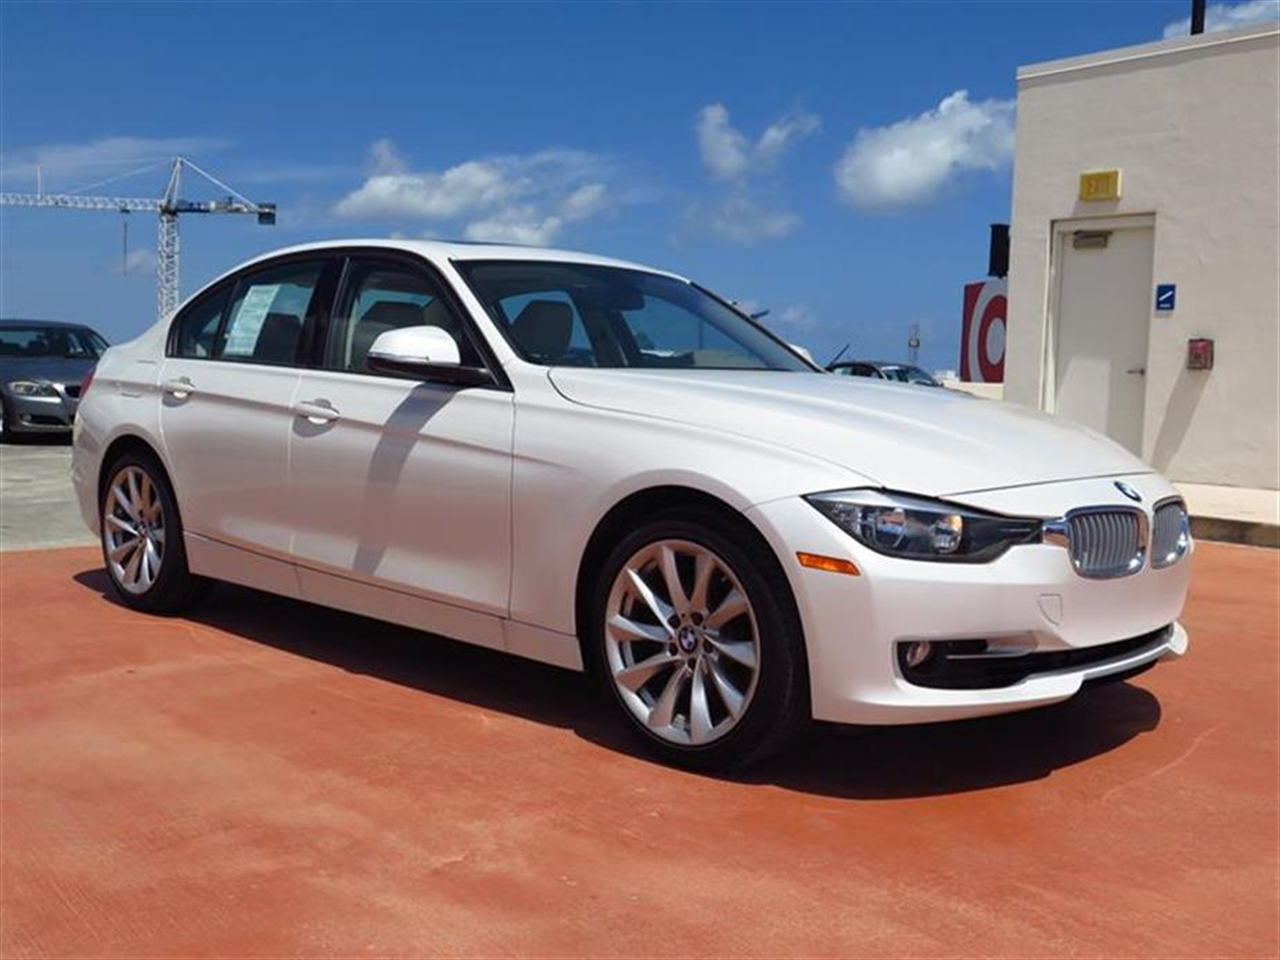 2013 BMW 3 SERIES 4dr Sdn 328i RWD 20499 miles 2-way headrests with active head restraints 3-spo